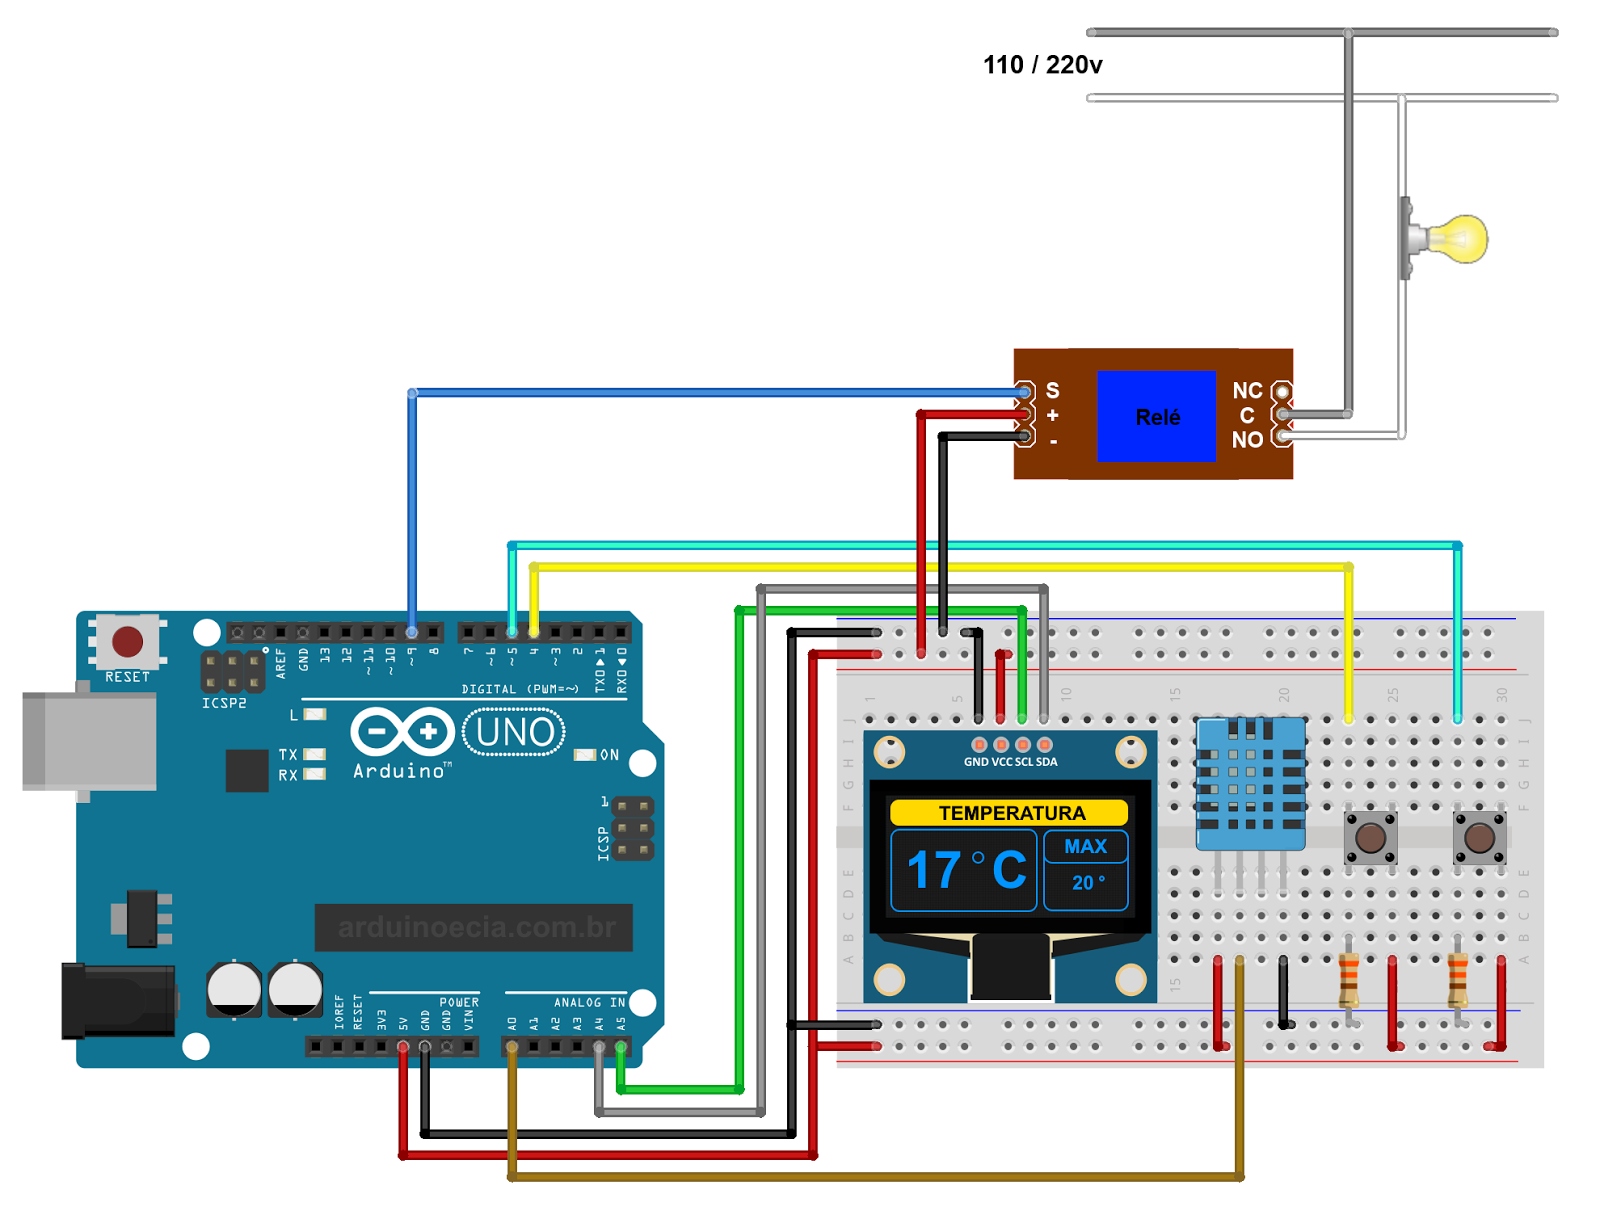 Optocoupler Interfacing With Avr Pic And 8051 in addition Phelps Dodge Nyy furthermore How To Connect Ir Photodiode Sensor together with Wiring Up The Srd 05vdc Sl C To An Arduino Or Arduino Like Microcontroller also 27650 Cigarette Lighter Removal. on 4 post relay